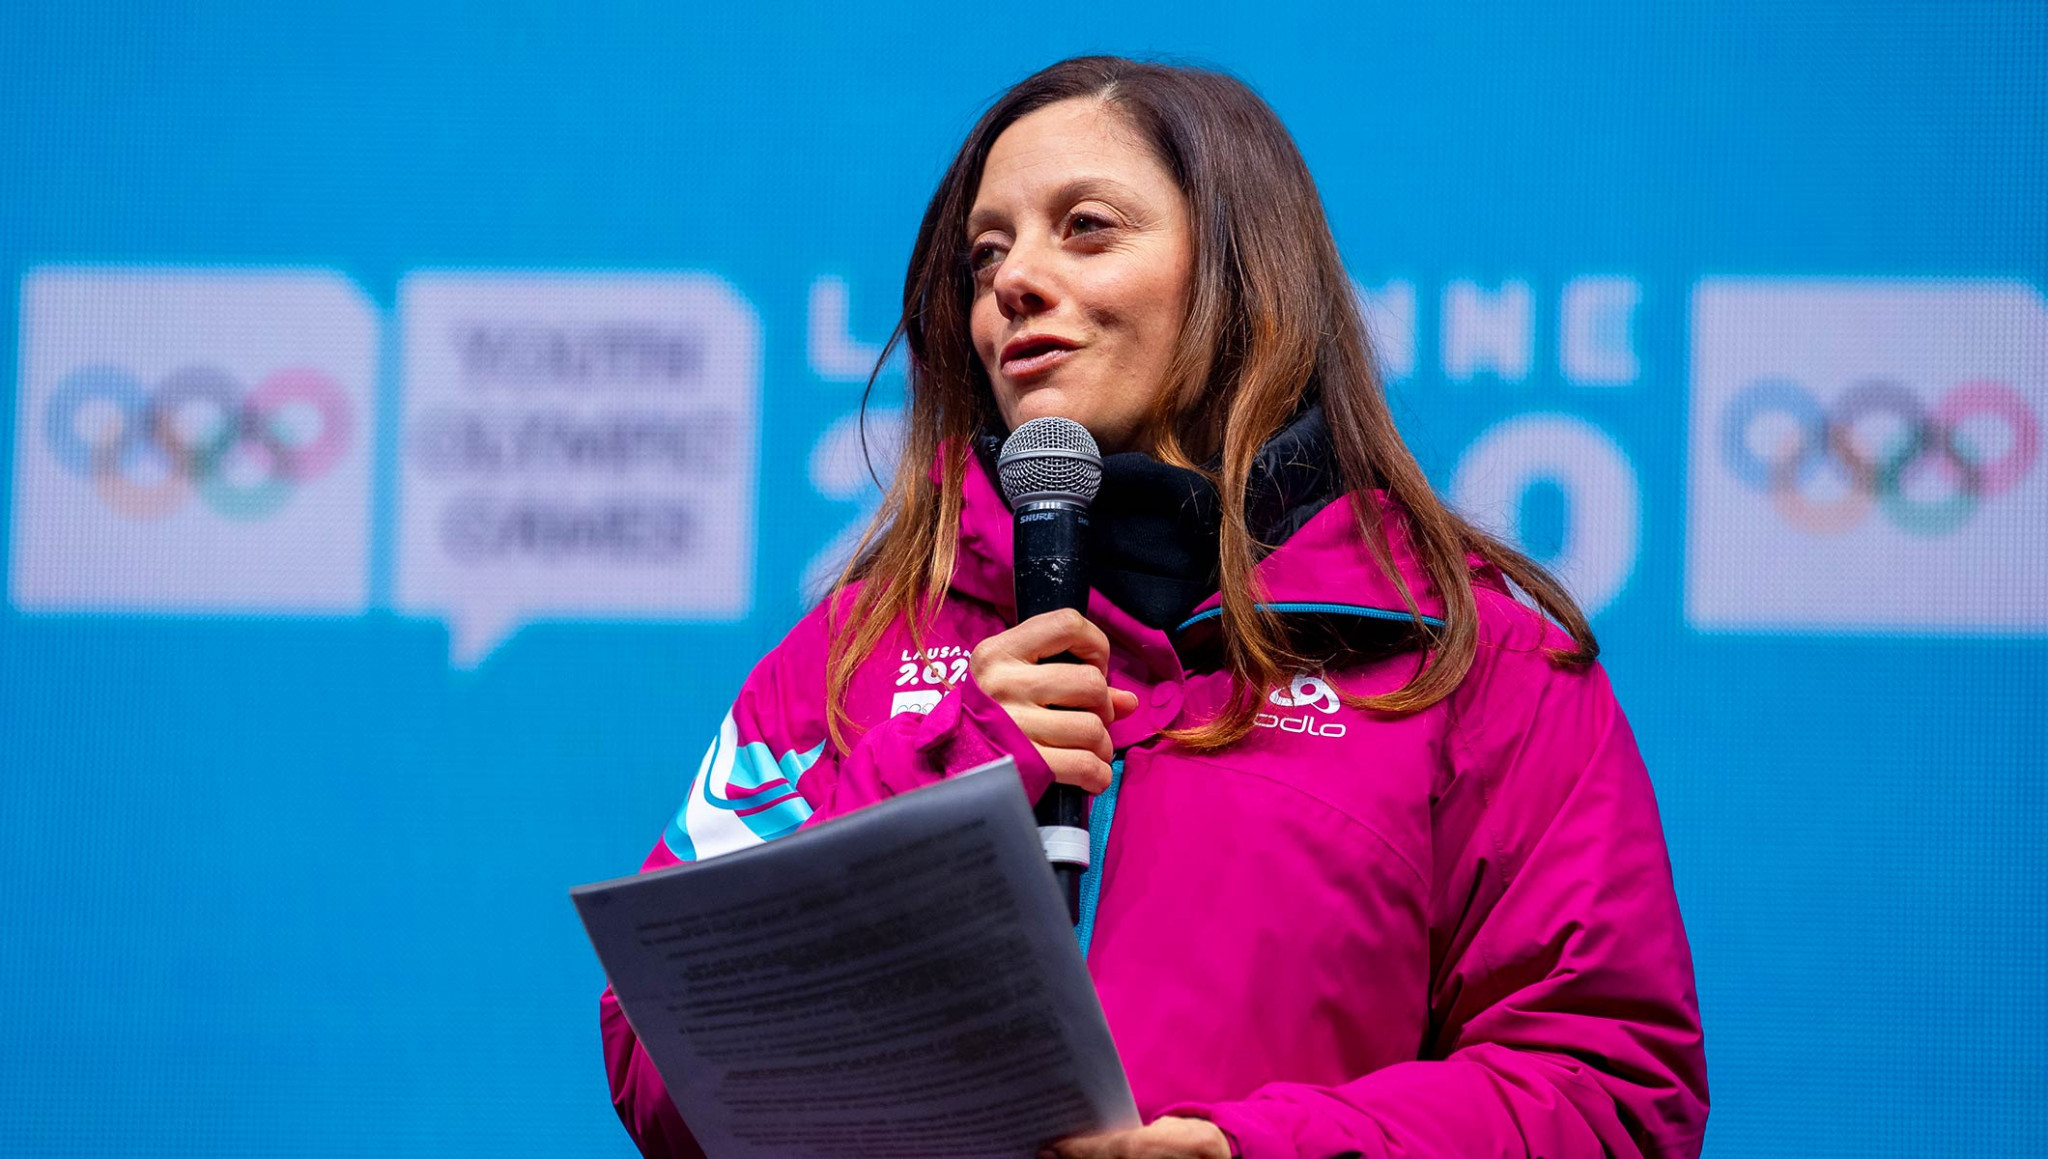 """Faivre claims success of Lausanne 2020 """"exceeded our expectations"""""""